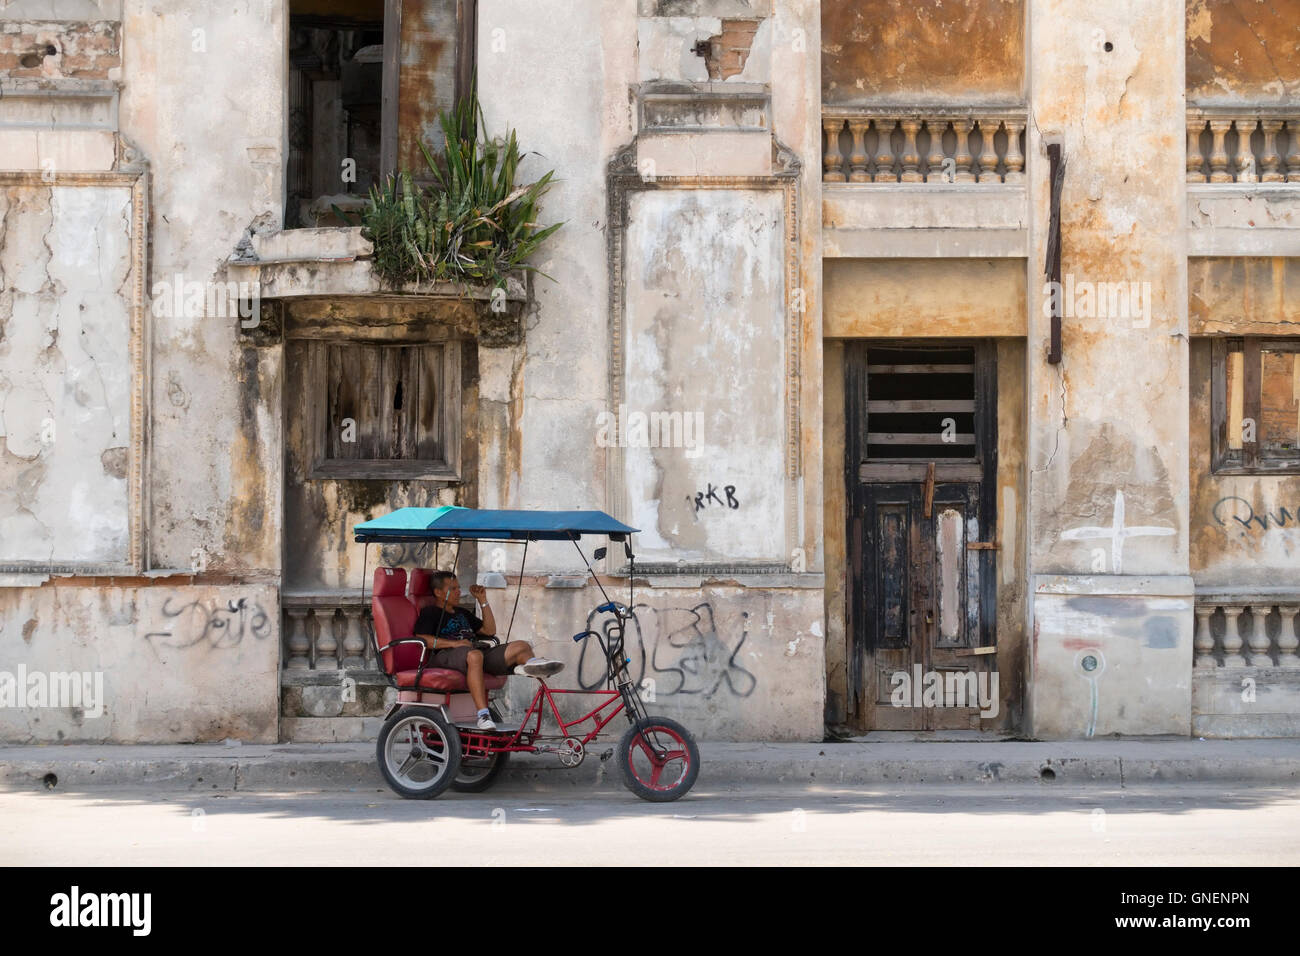 A man rests sitting on his bicitaxi in front of a decrepit abandoned building. Havana, Cuba. - Stock Image